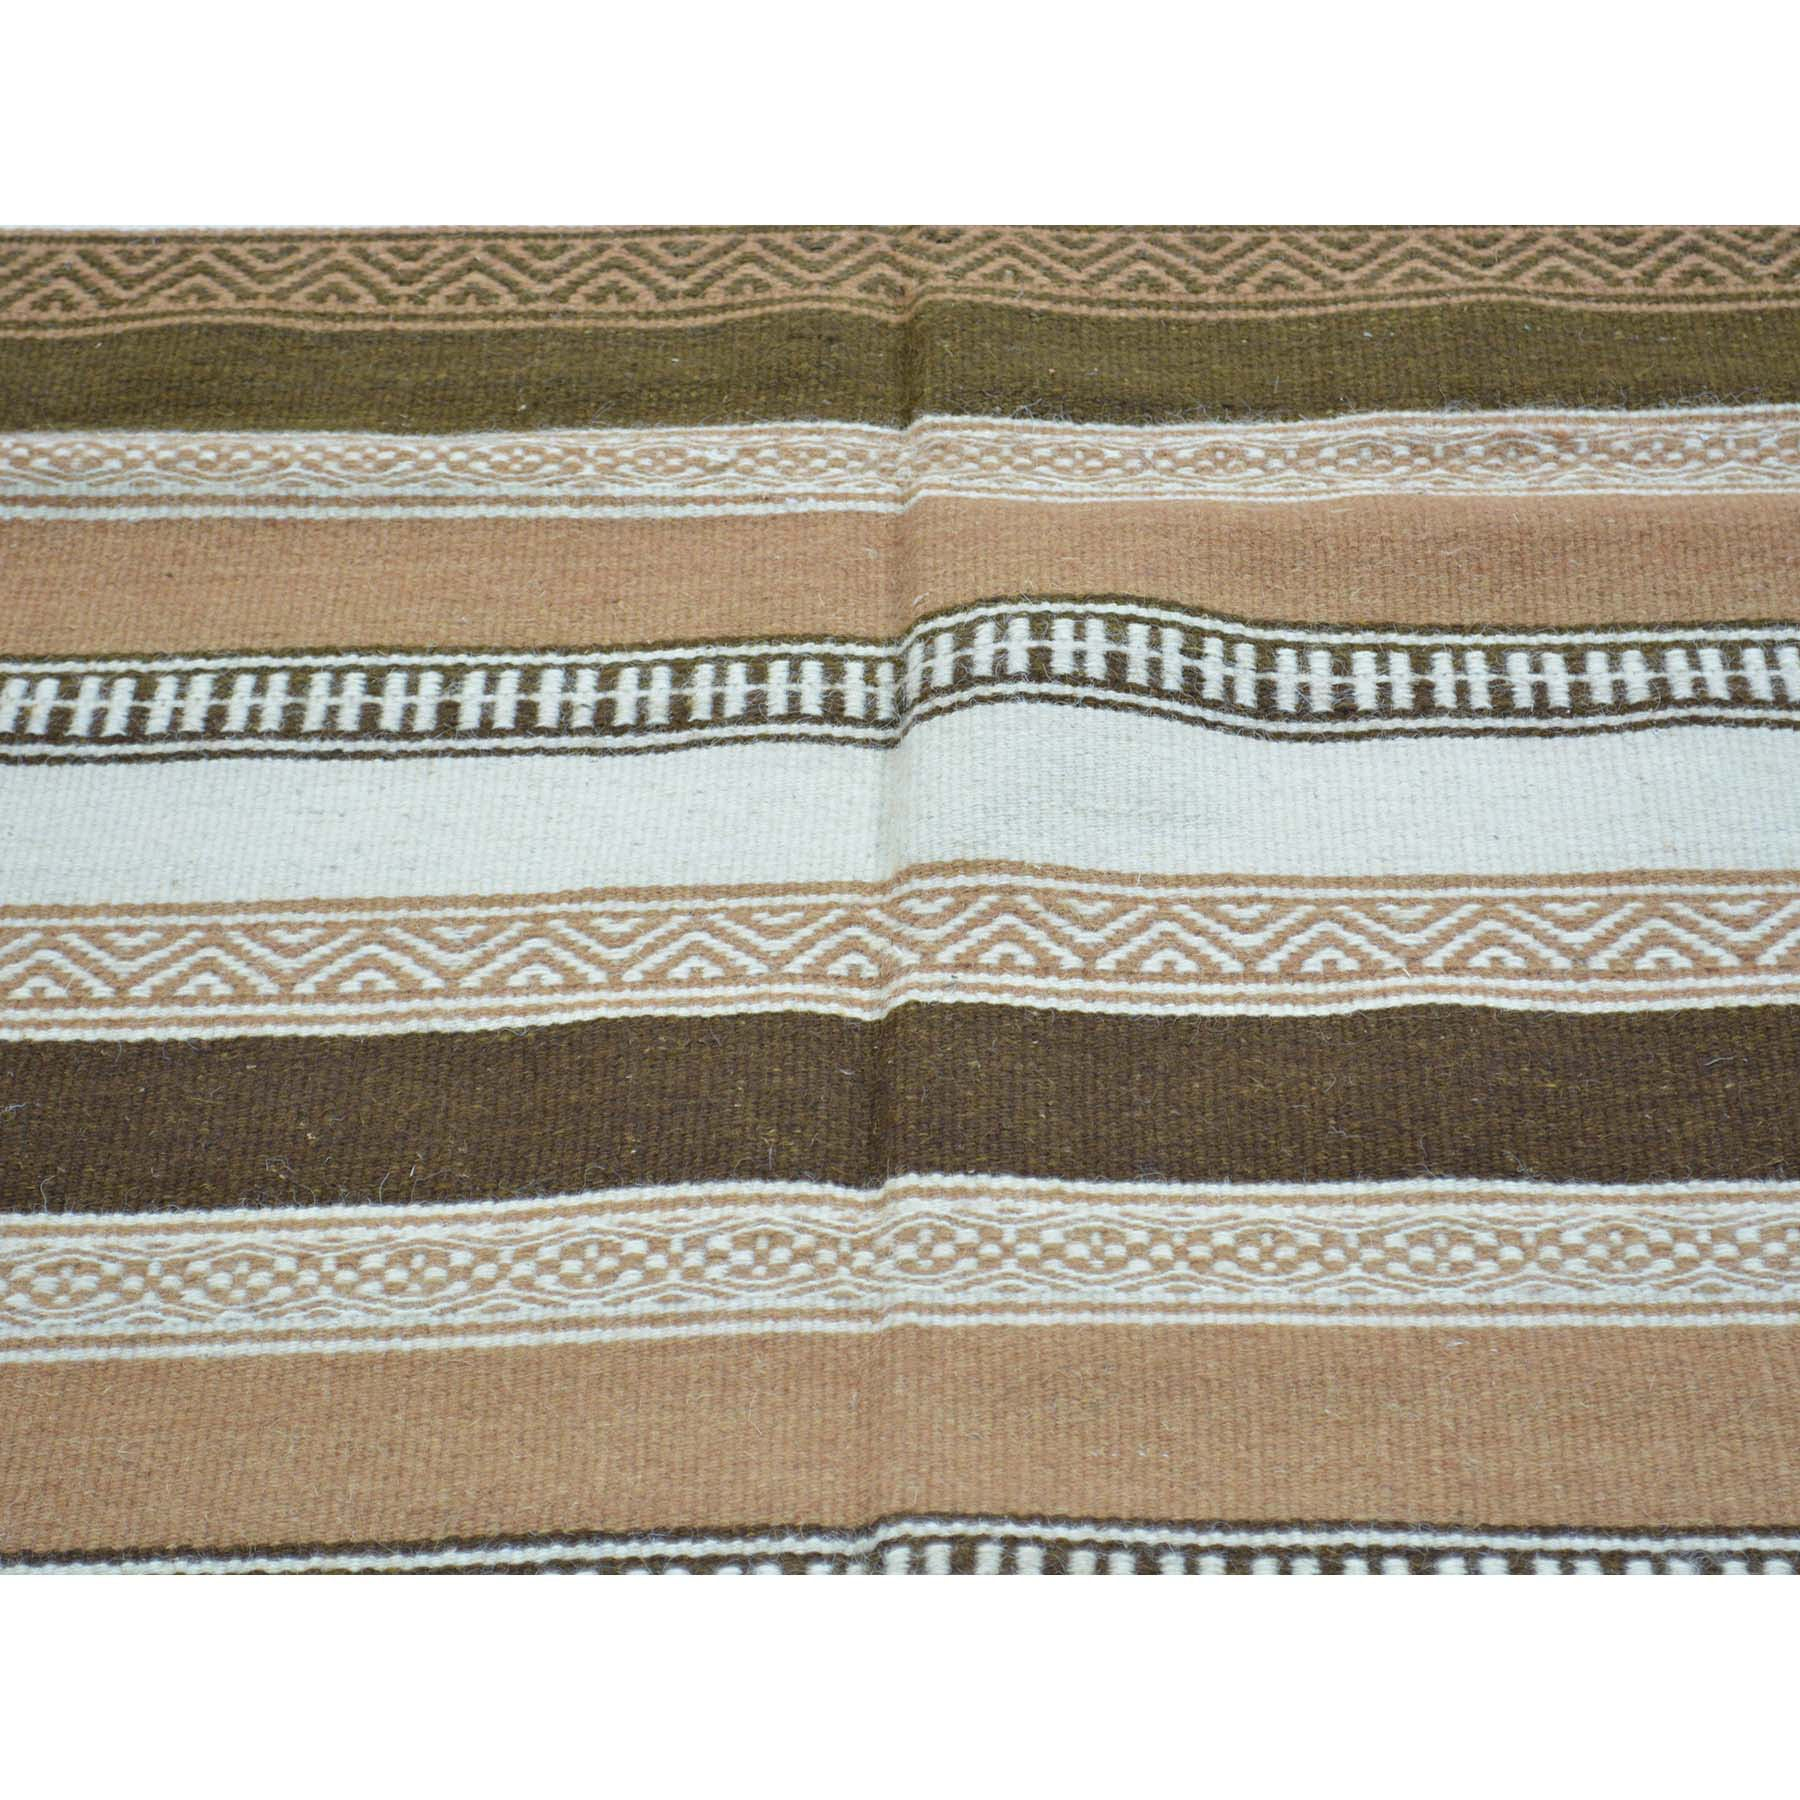 "Handmade Flat Weave Rectangle Rug > Design# SH30008 > Size: 3'-10"" x 6'-2"" [ONLINE ONLY]"